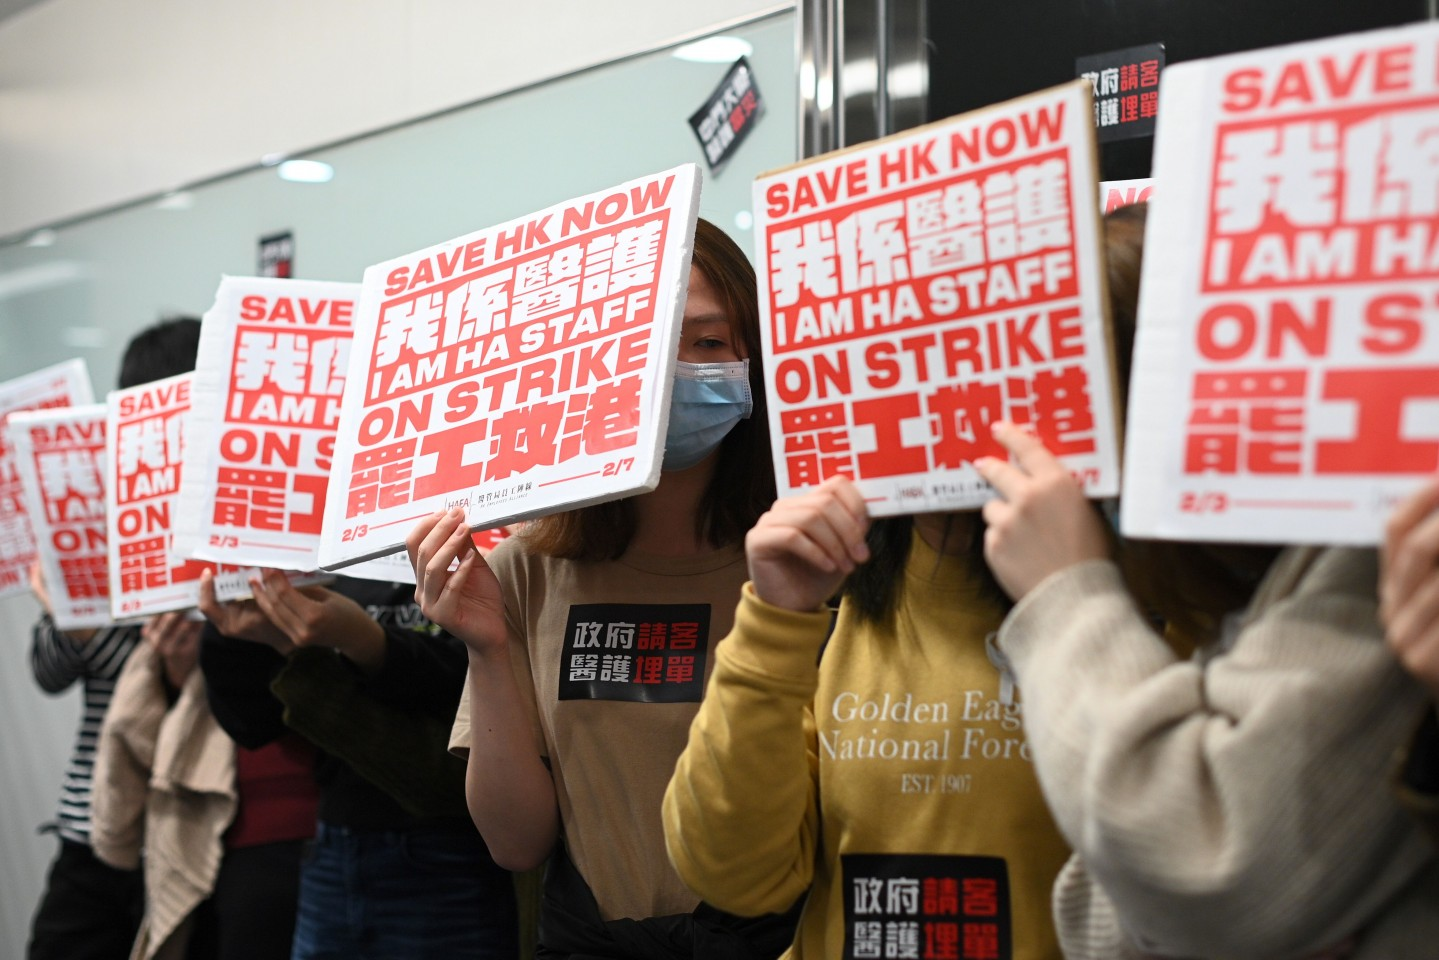 Members of the Hospital Authority Employees Alliance and other medical personnel hold placards during a strike at the Hospital Authority building in Hong Kong on 7 February 2020, calling for the government to close its border with the mainland to contain the virus outbreak. (Philip Fong/AFP)